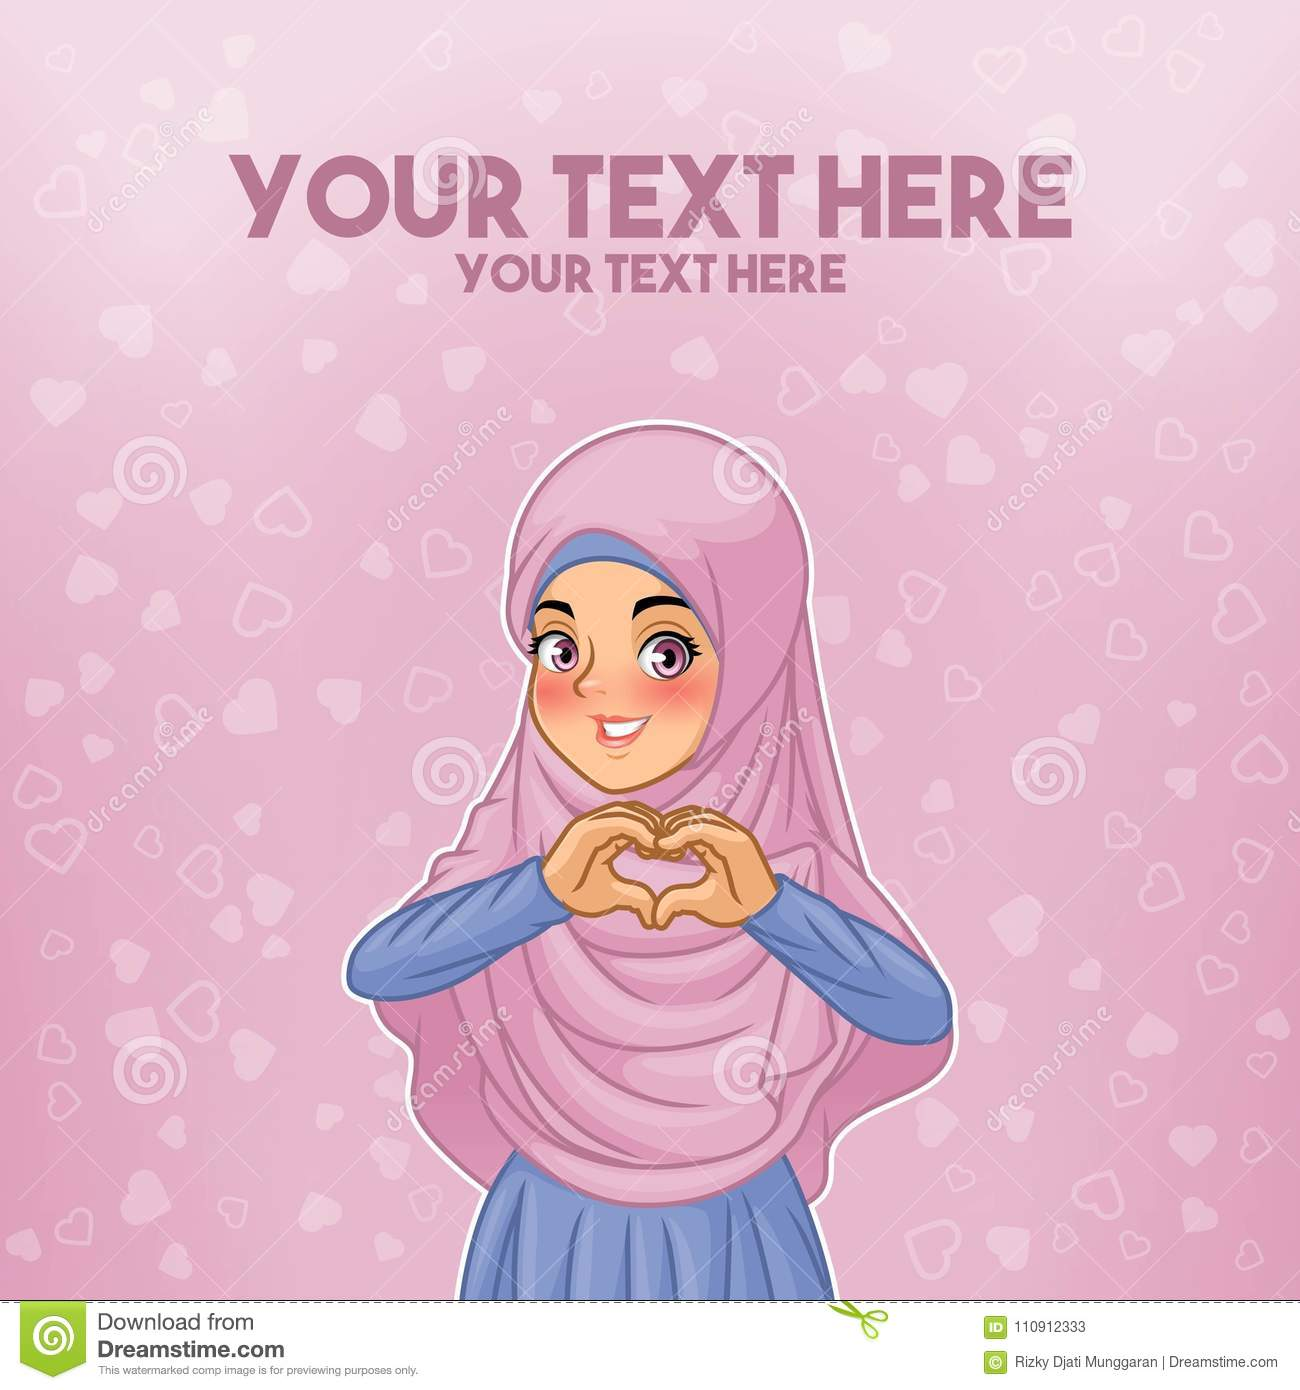 Muslim woman wearing hijab making heart shape with her hands